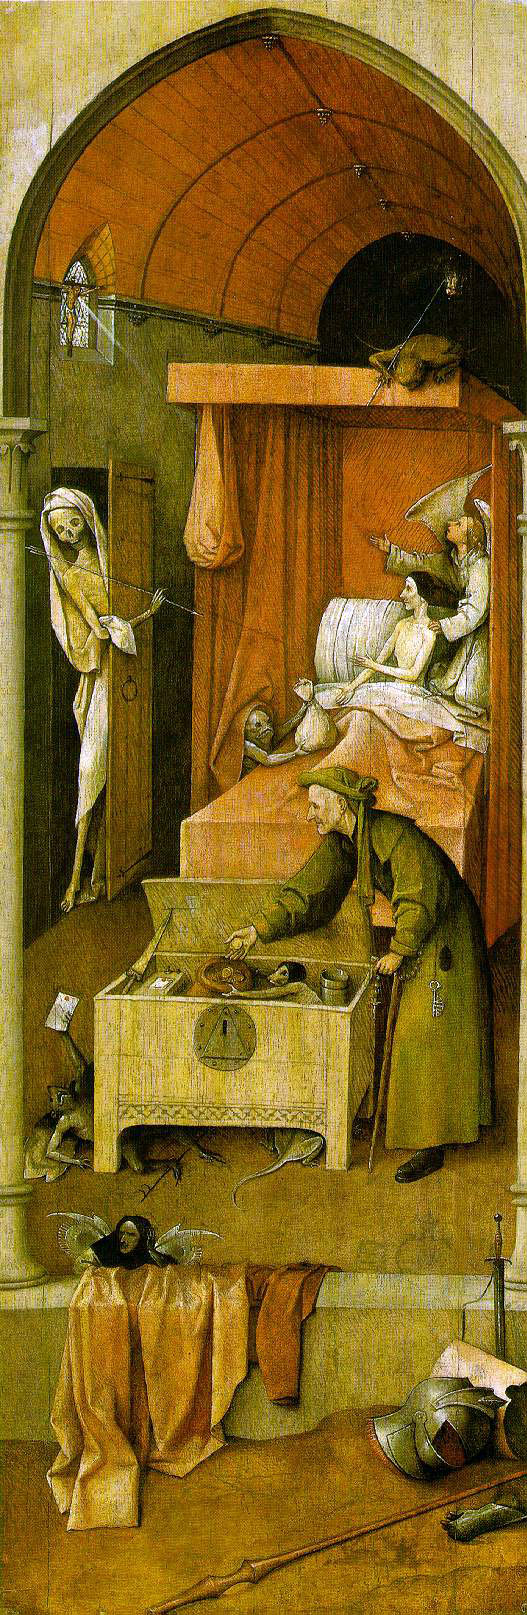 Bosch's Death And The Miser